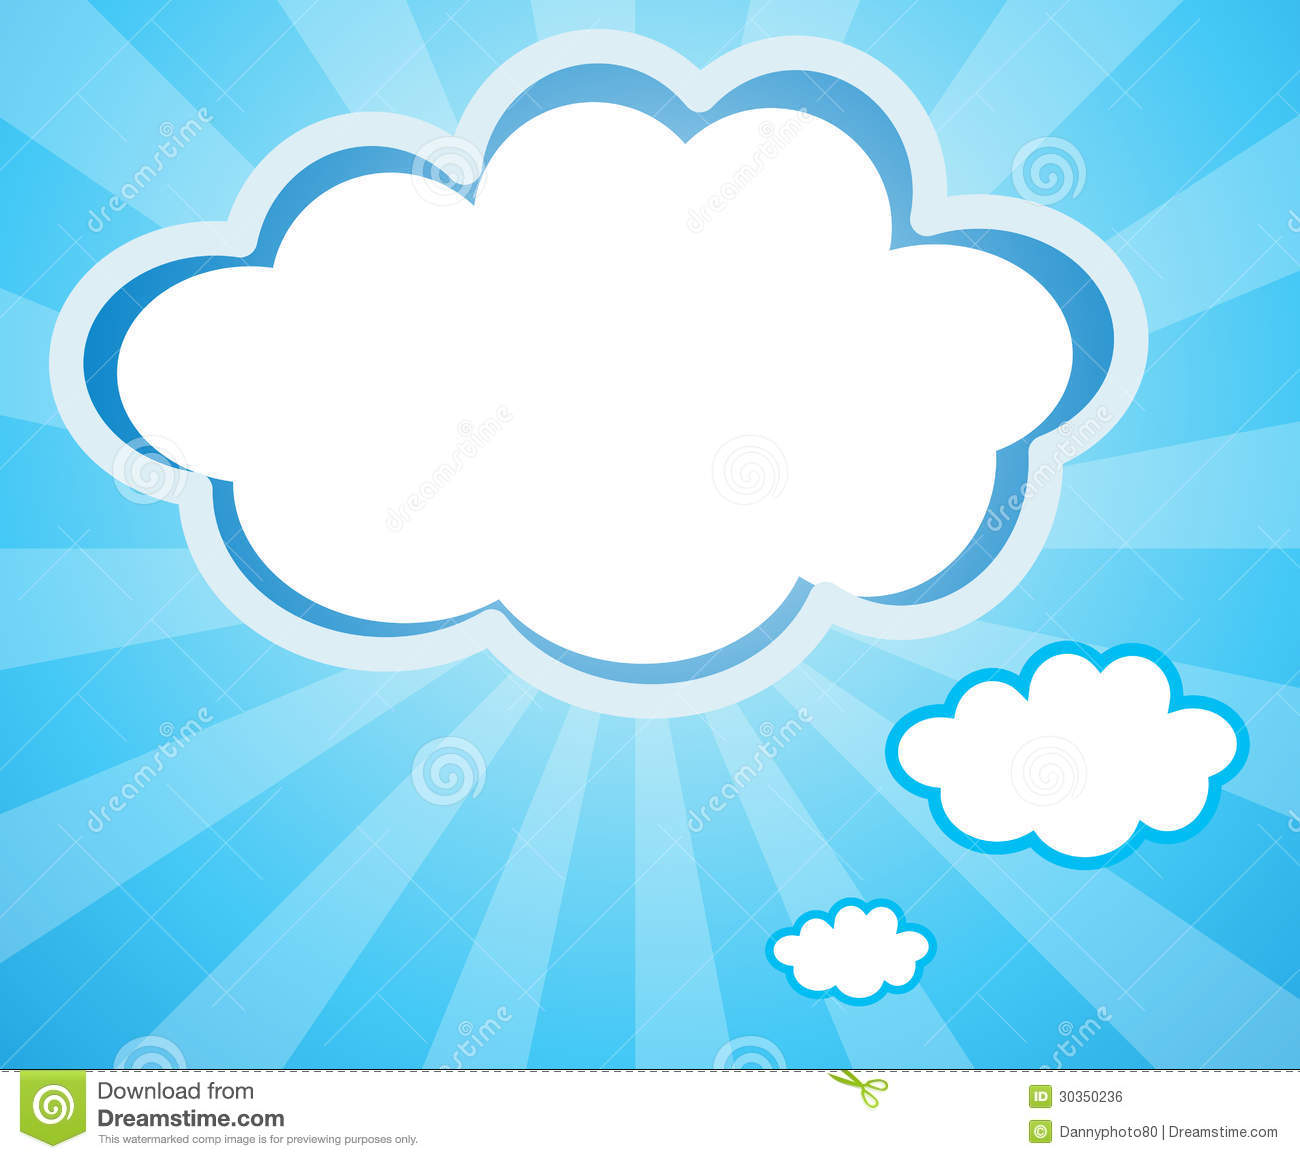 cloud template with lines - empty cloud templates royalty free stock image image